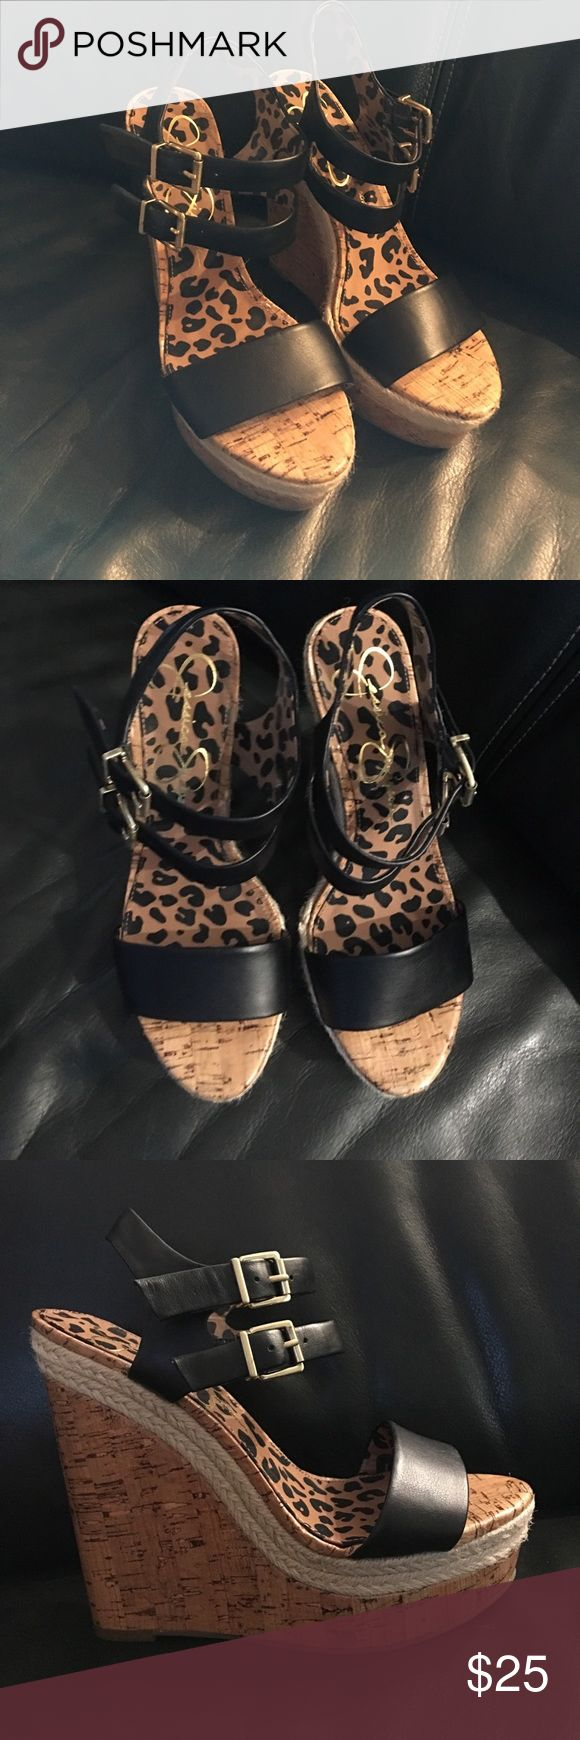 Jessica Simpson Wedge Shoes These are in perfect barley used condition. The straps are Black leather with brass tone buckles. These were worn once. From a smoke free home. Reasonable offers welcome. Jessica Simpson Shoes Platforms